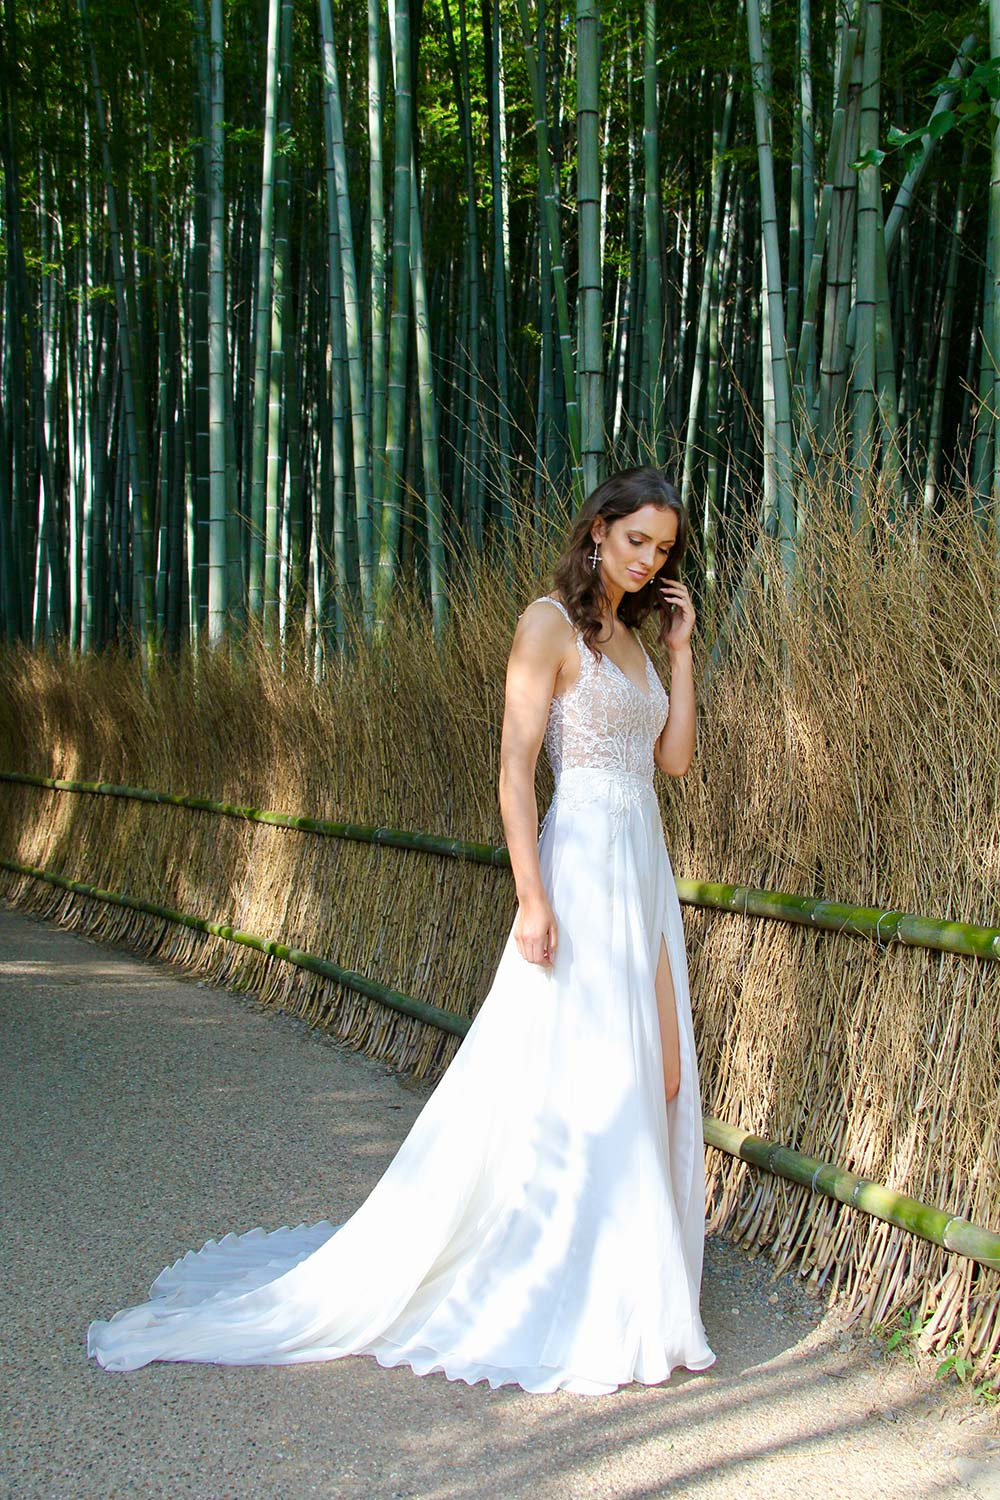 Female model wearing Vinka Design An Oriental Affair Wedding Dress. In a Japanese bamboo forest the front detail of a gown with a bodice of two beaded laces on a nude base and a silk chiffon skirt with side split.